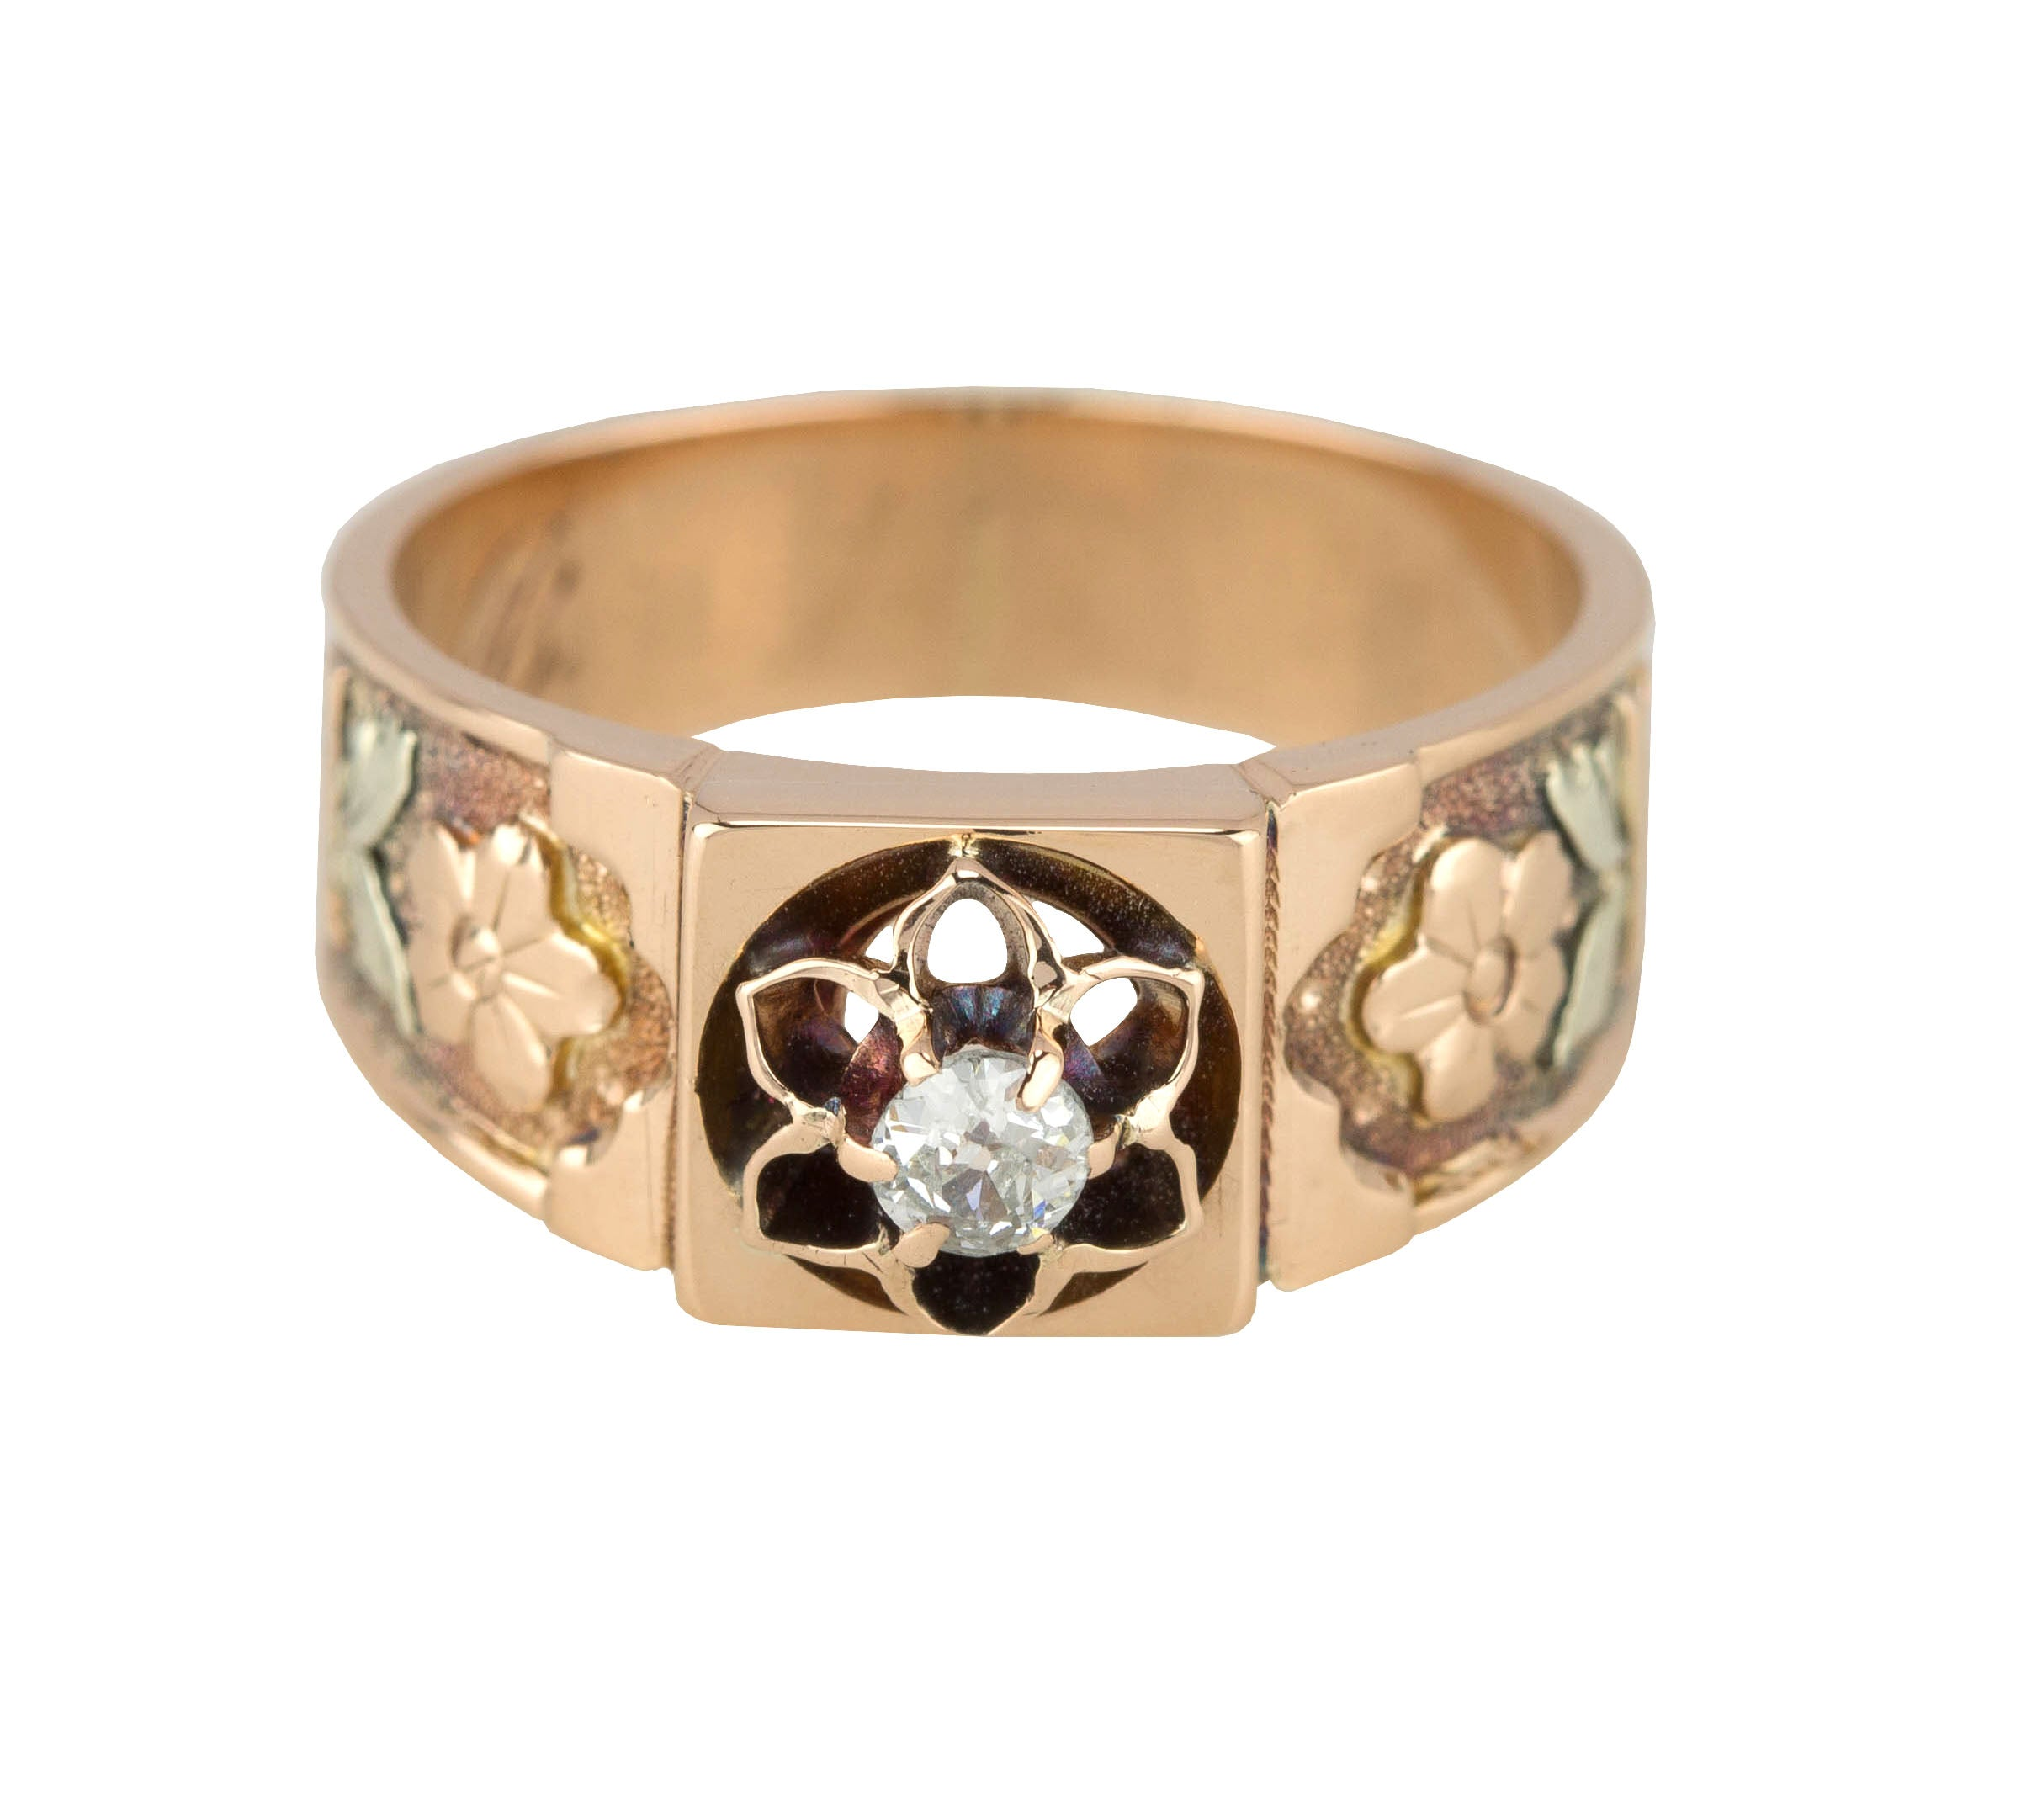 Women's Antique Victorian 14K Rose Gold 0.10ct Diamond Floral Filigree Band Ring